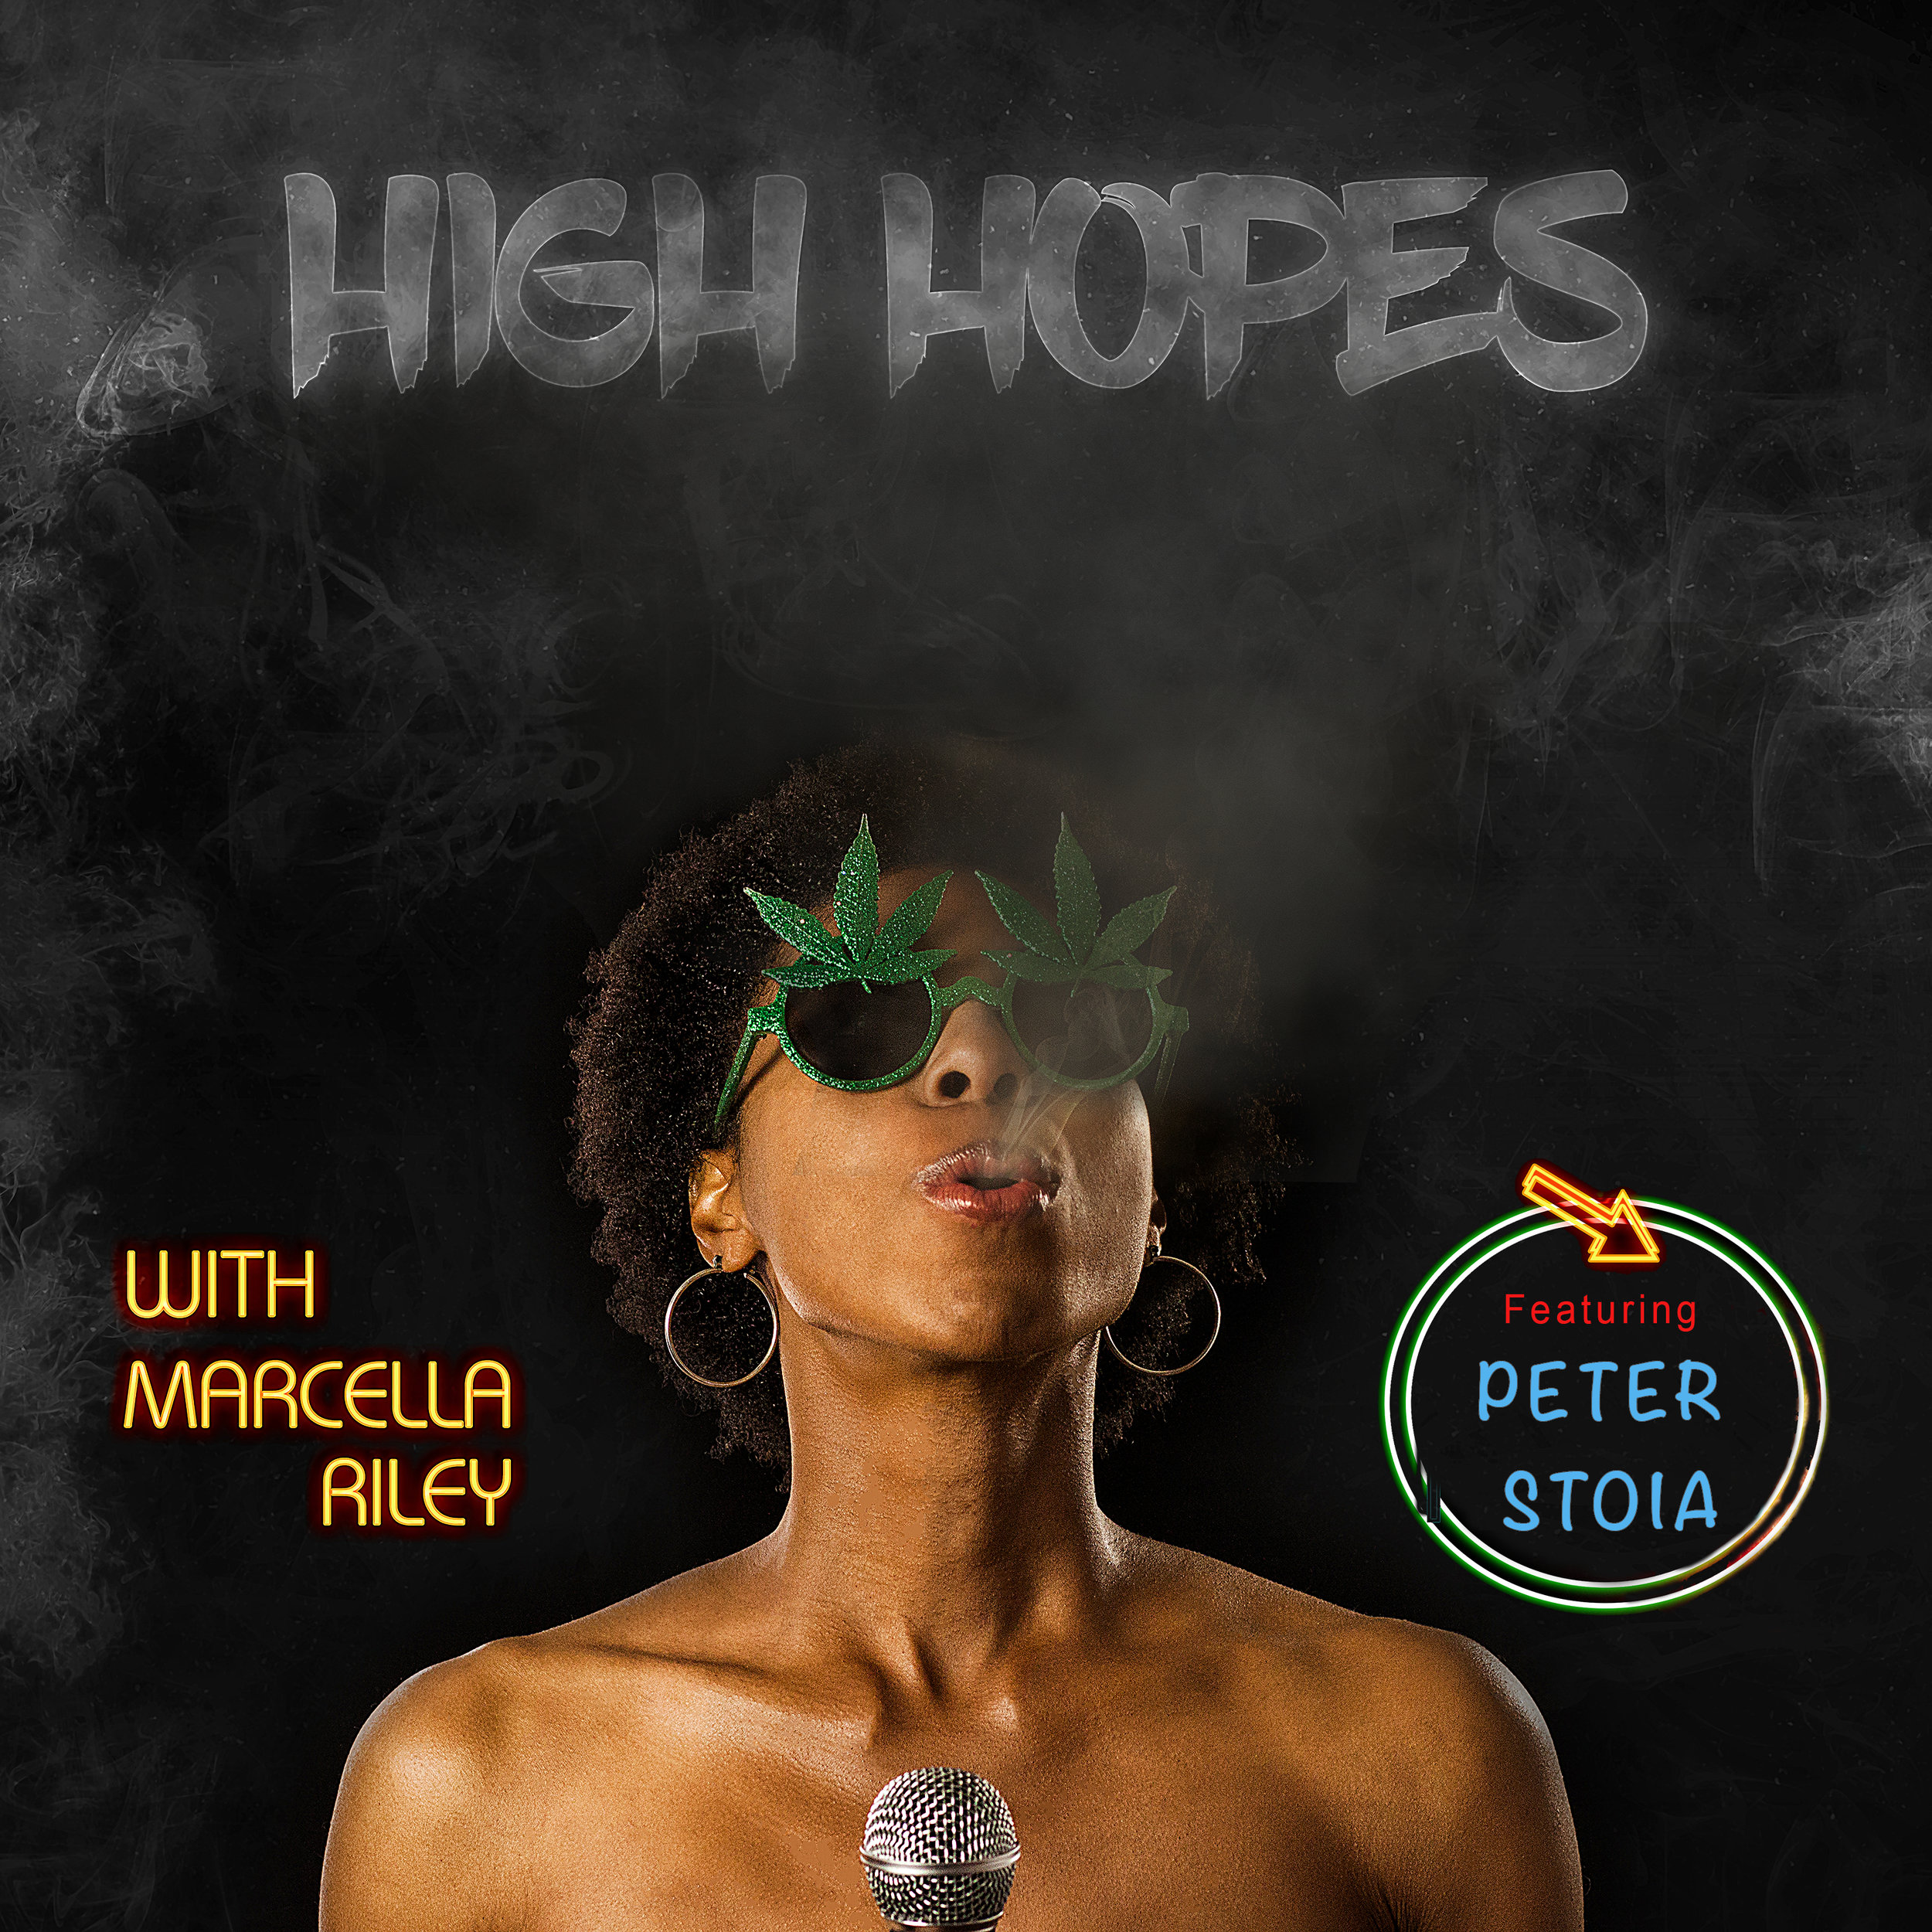 high_hopes-promo Peter Stoia.jpg